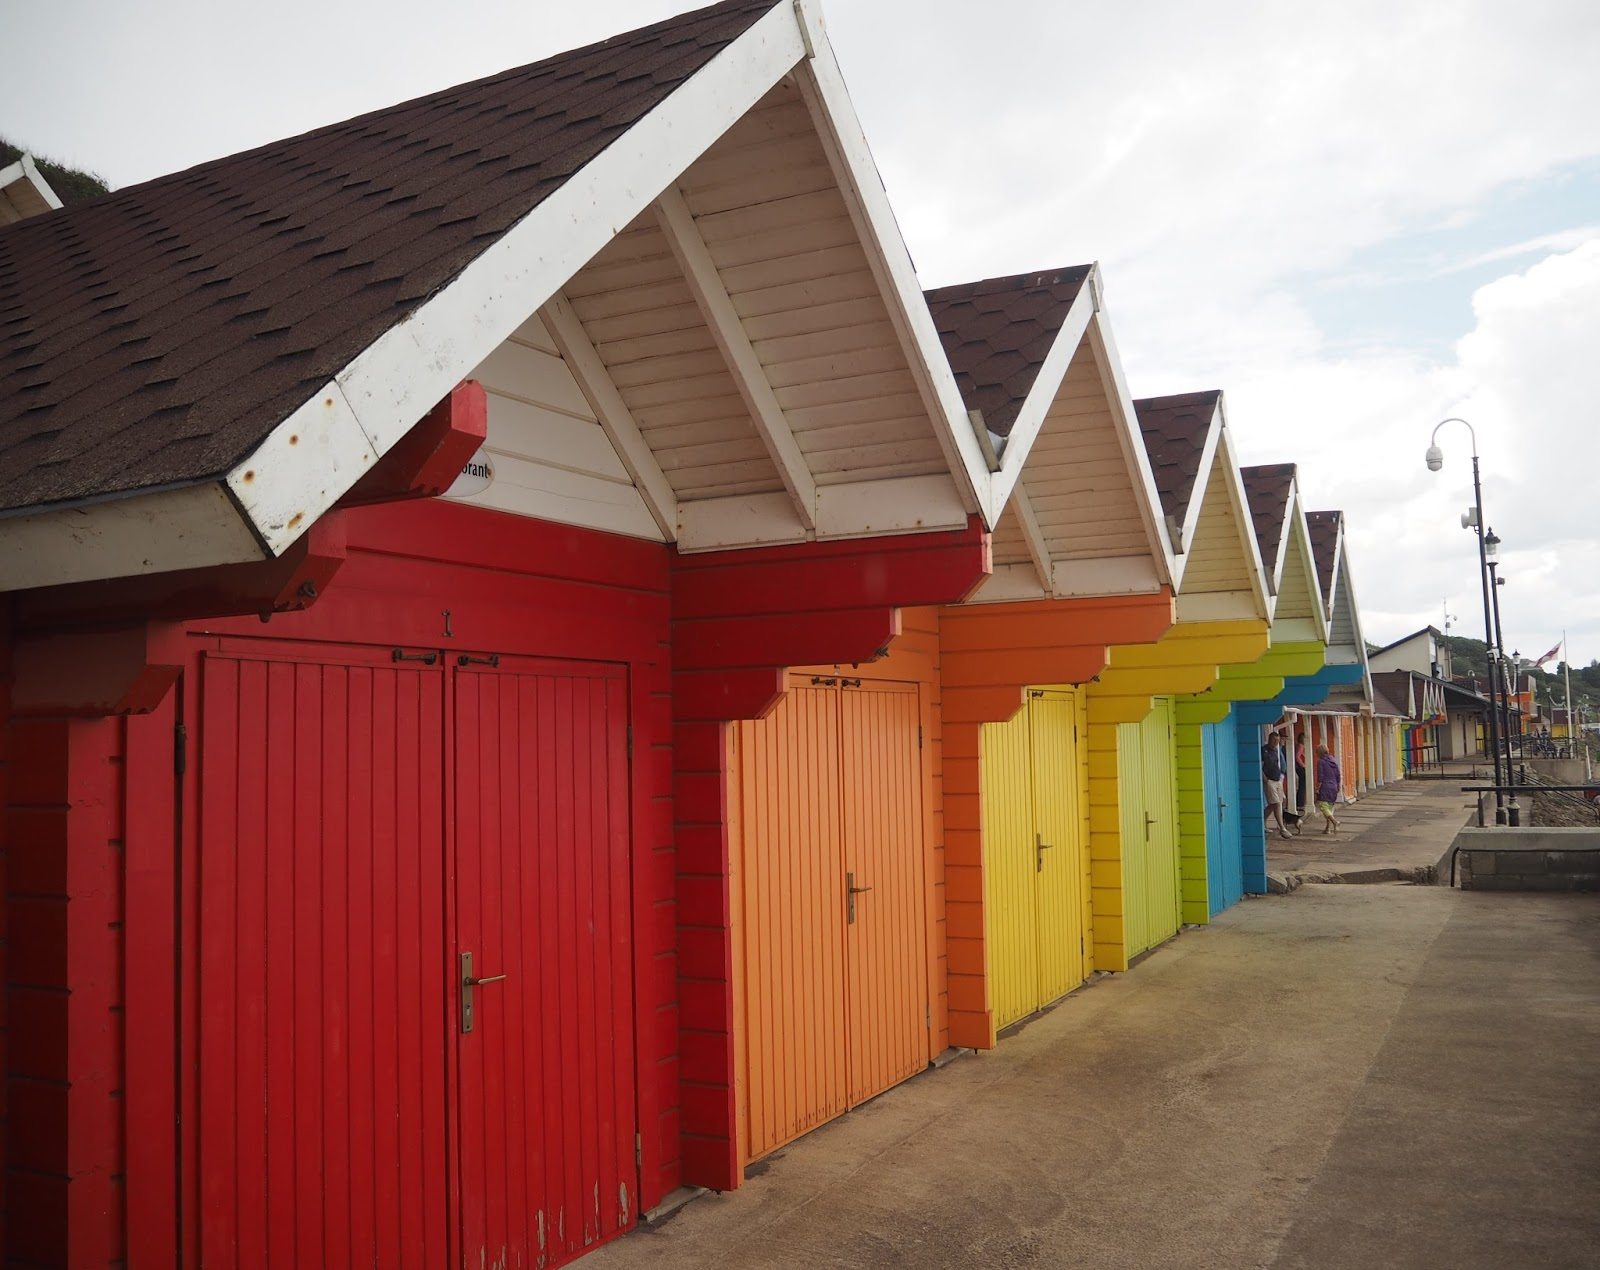 Bright beach huts North Bay, Scarborough